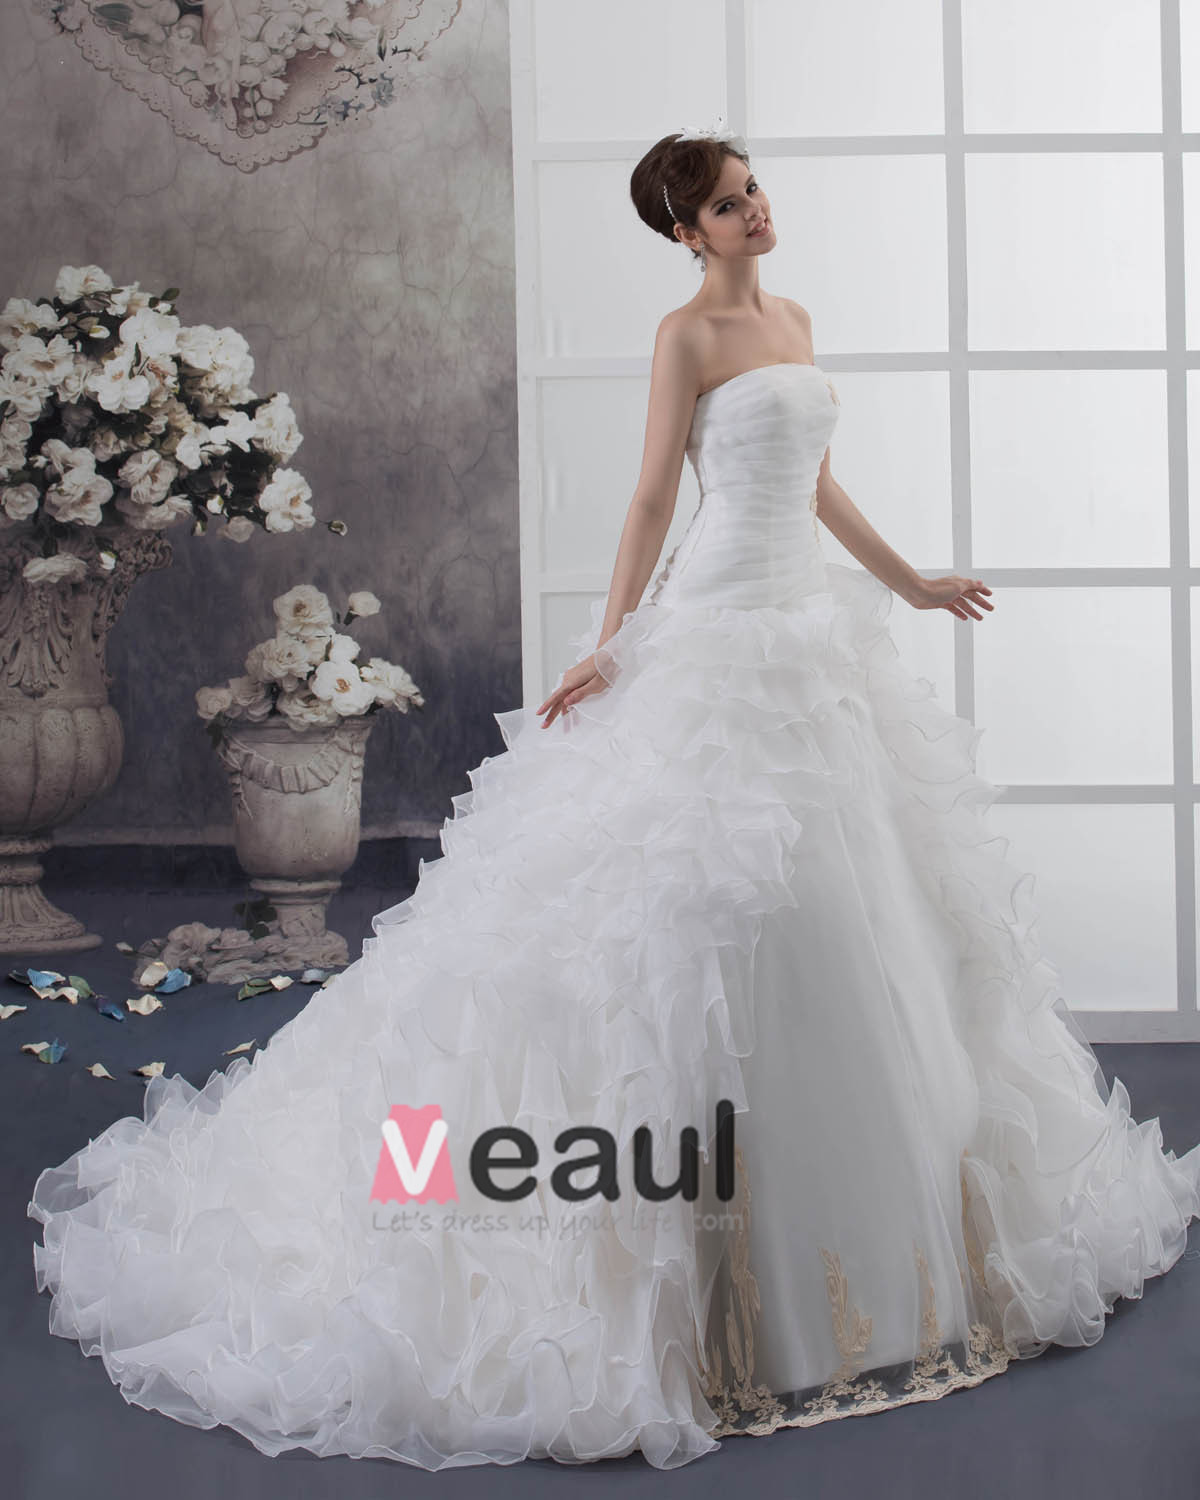 Satin Organza Embroidery Beading Court A-Line Bridal Gown Wedding Dresses